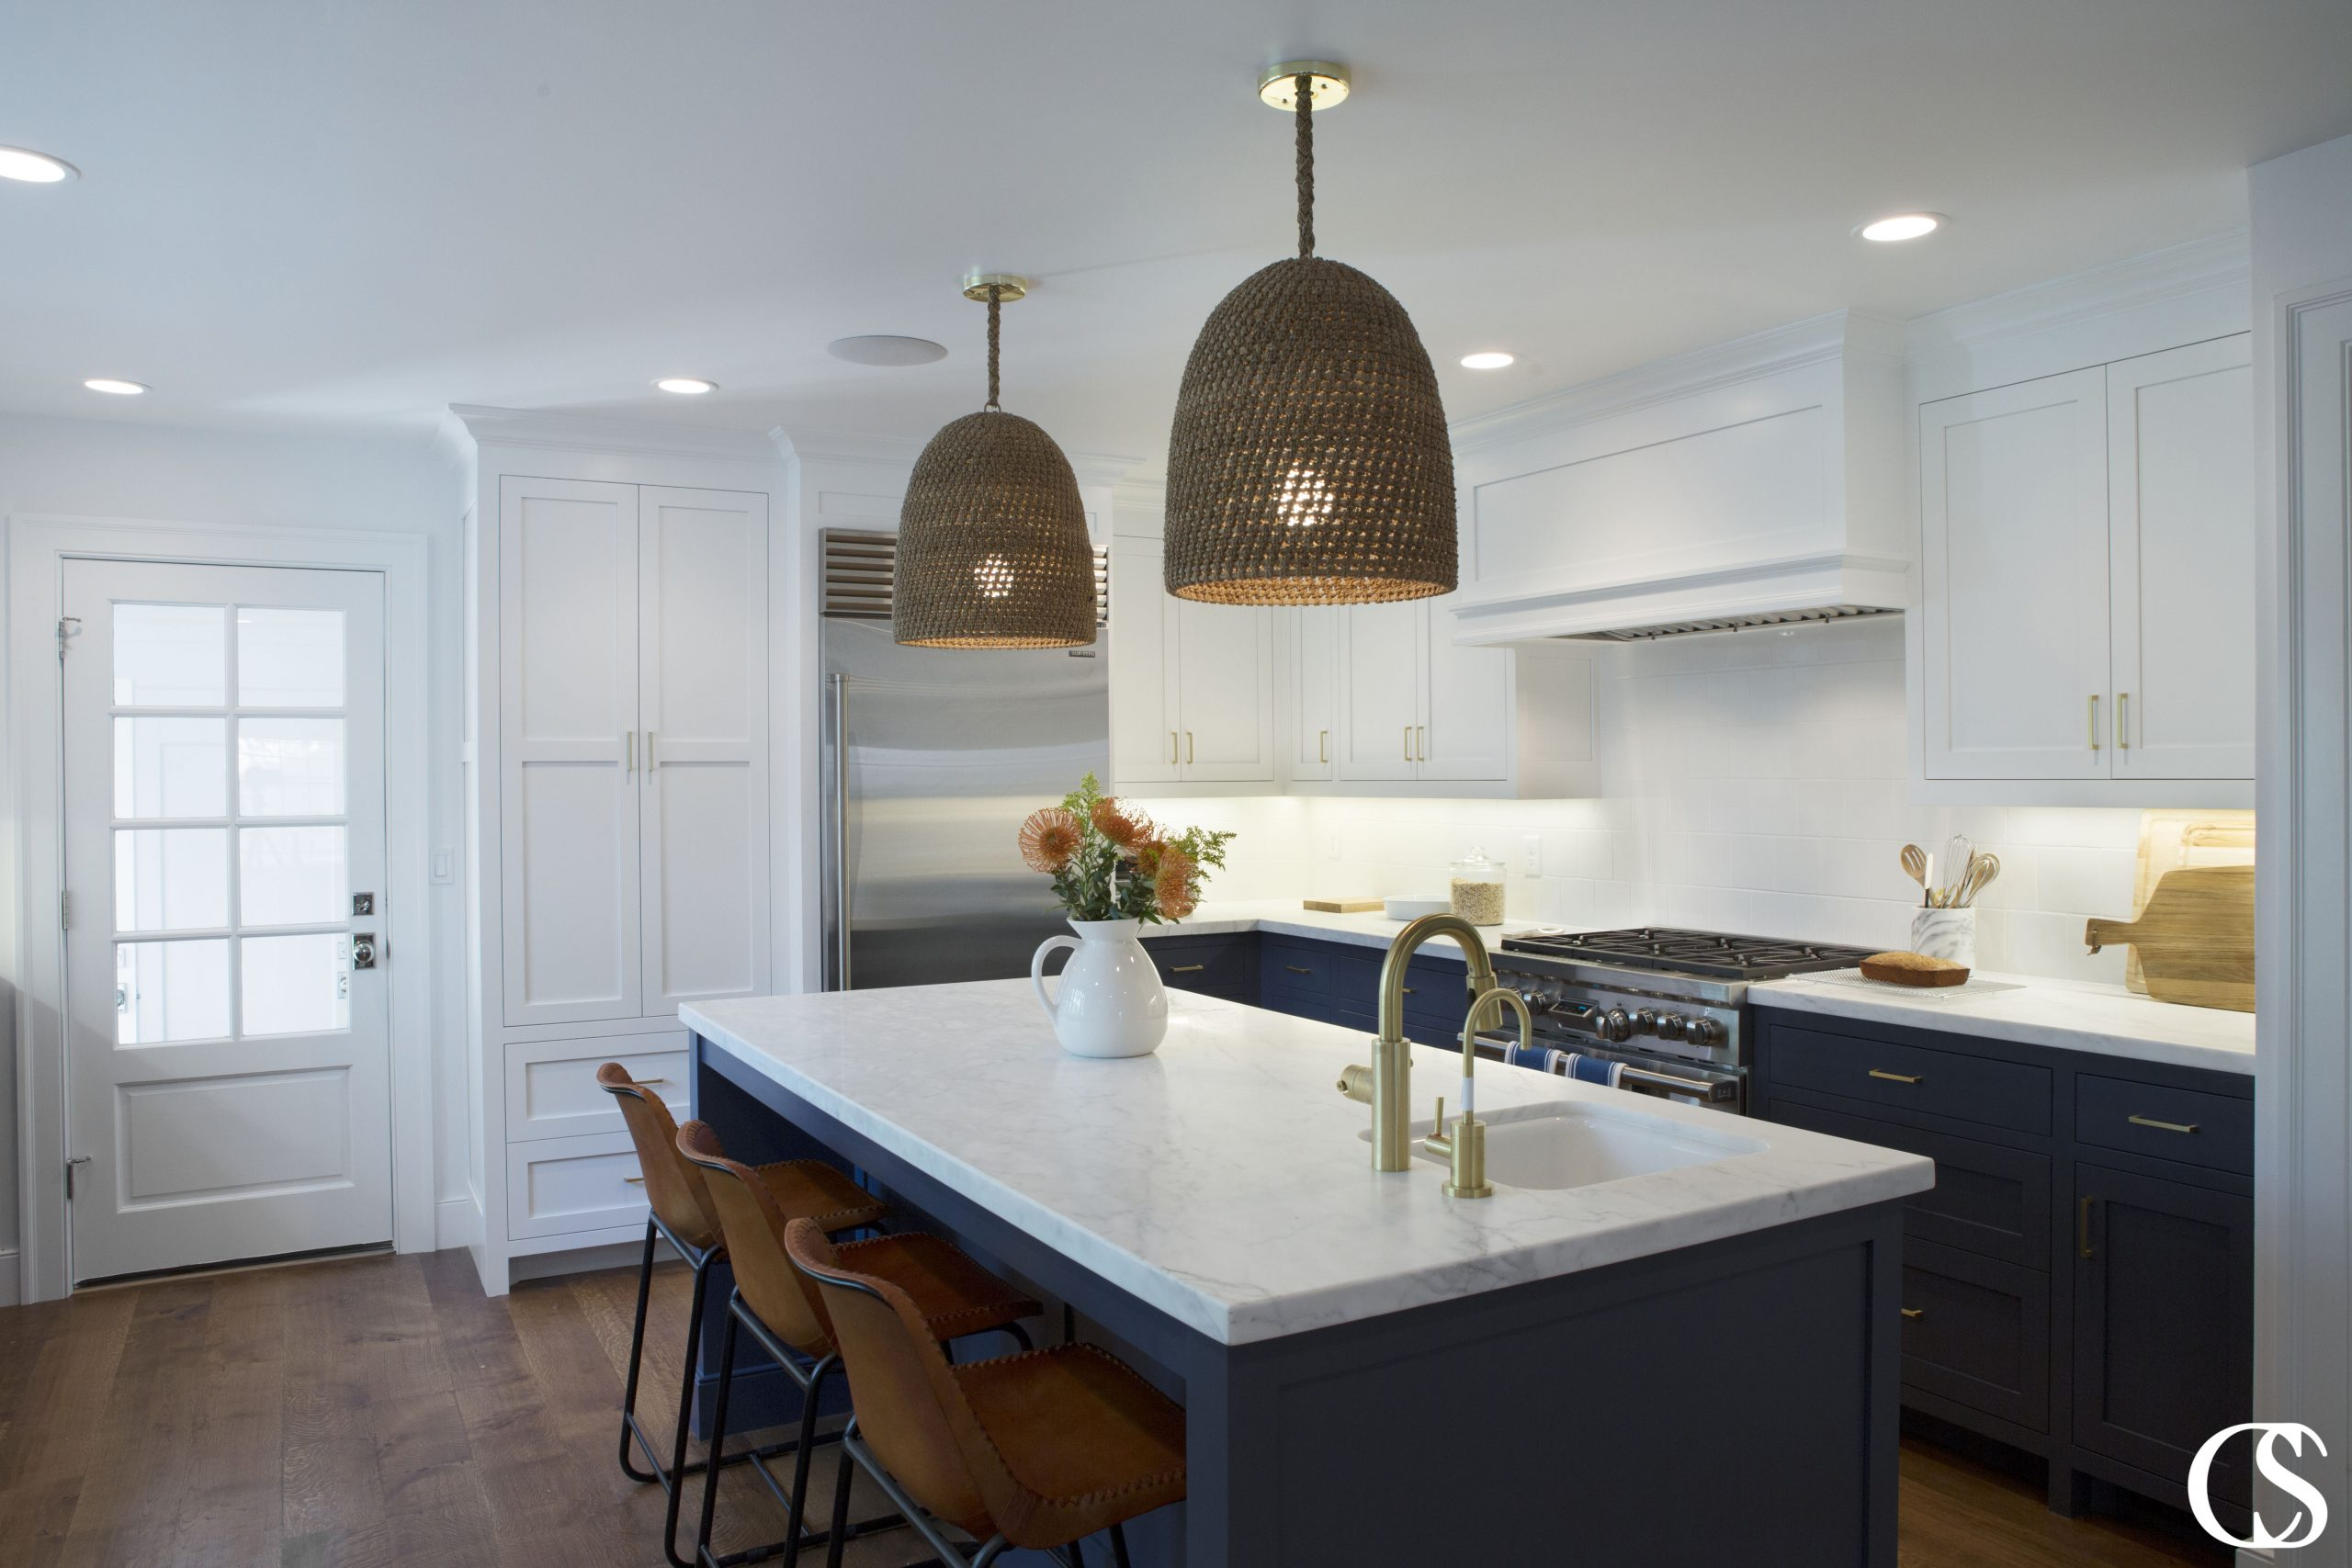 Creating a unique blue custom kitchen doesn't have to mean straying from a standard (and working!) kitchen layout. Make a statement with blue custom kitchen cabinets paired with white uppers to bring light into the space.